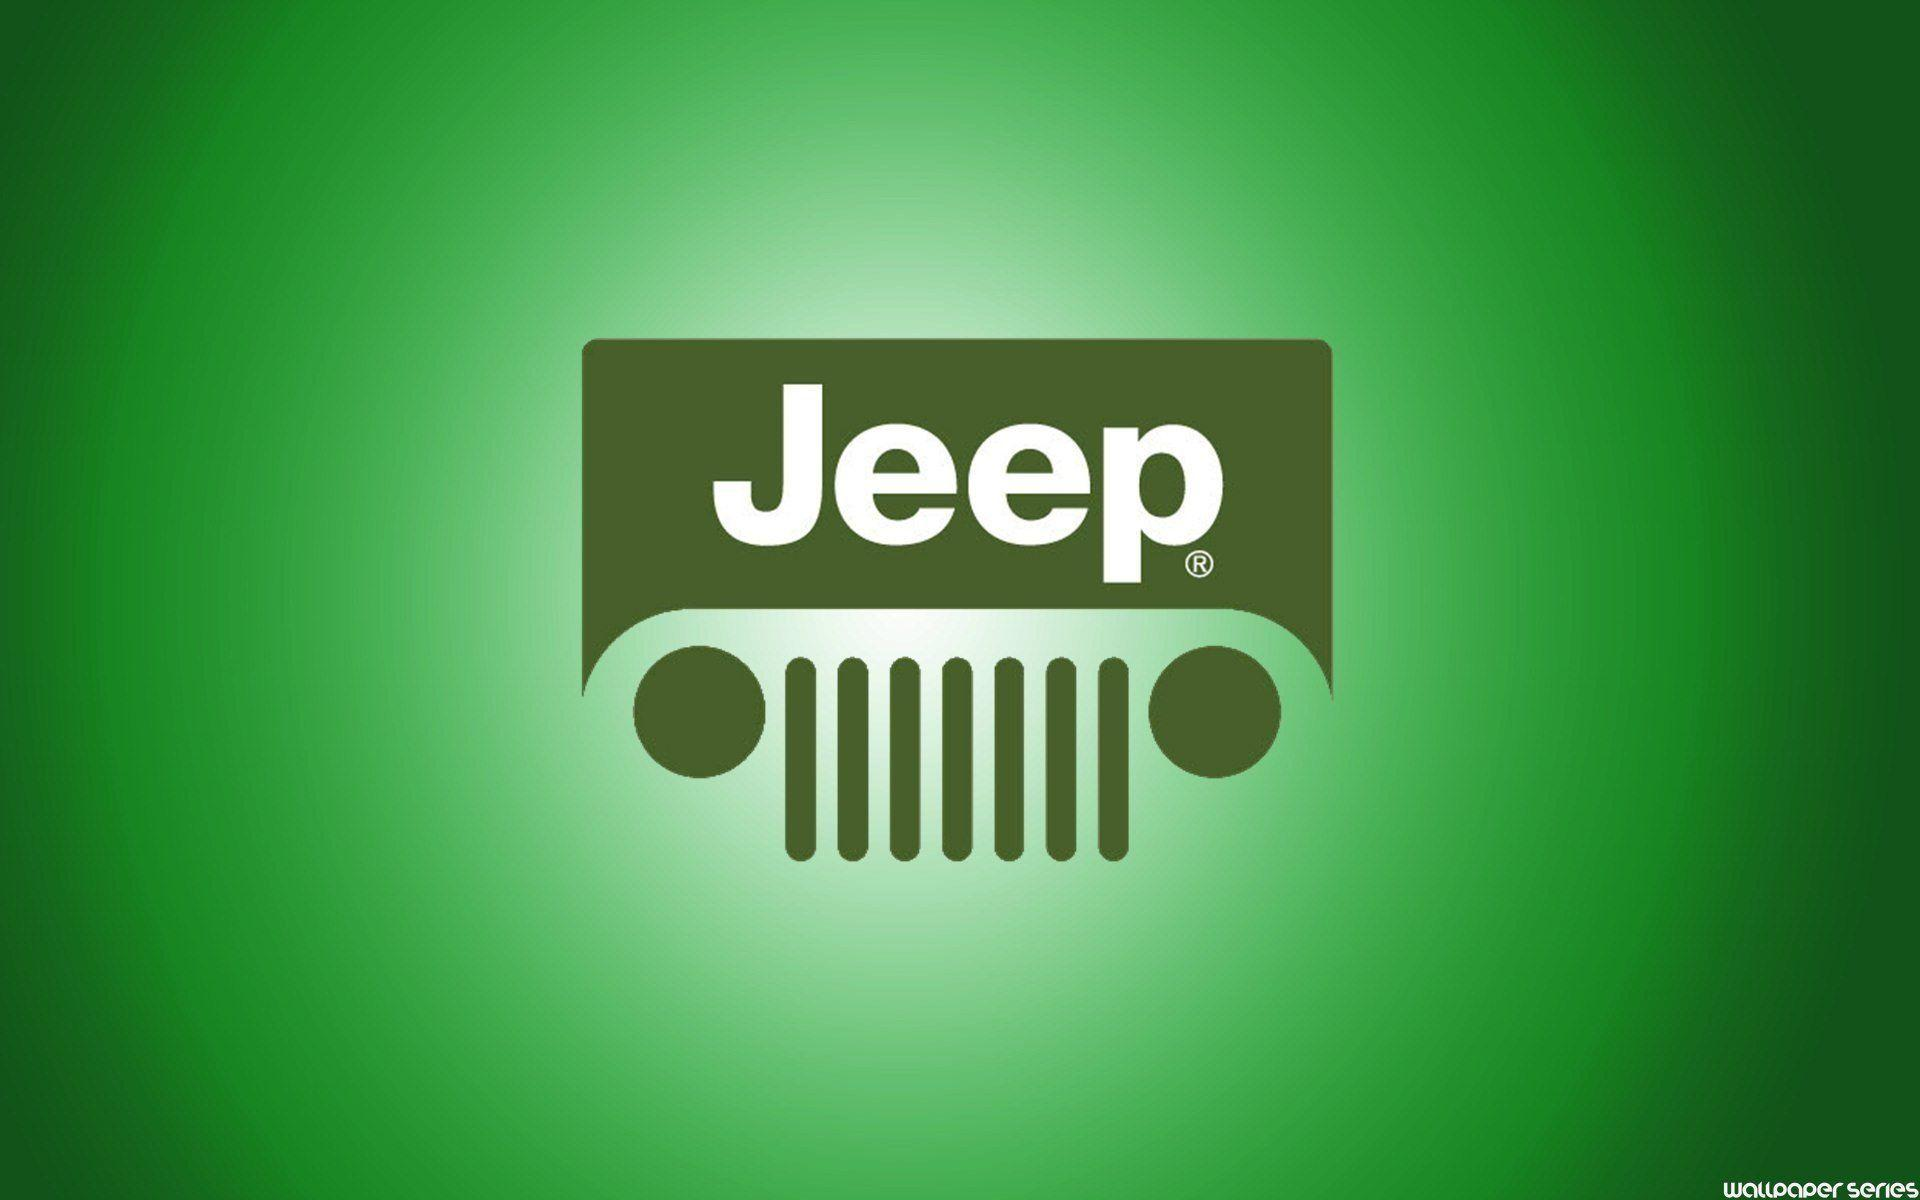 JEEP LOGO Images